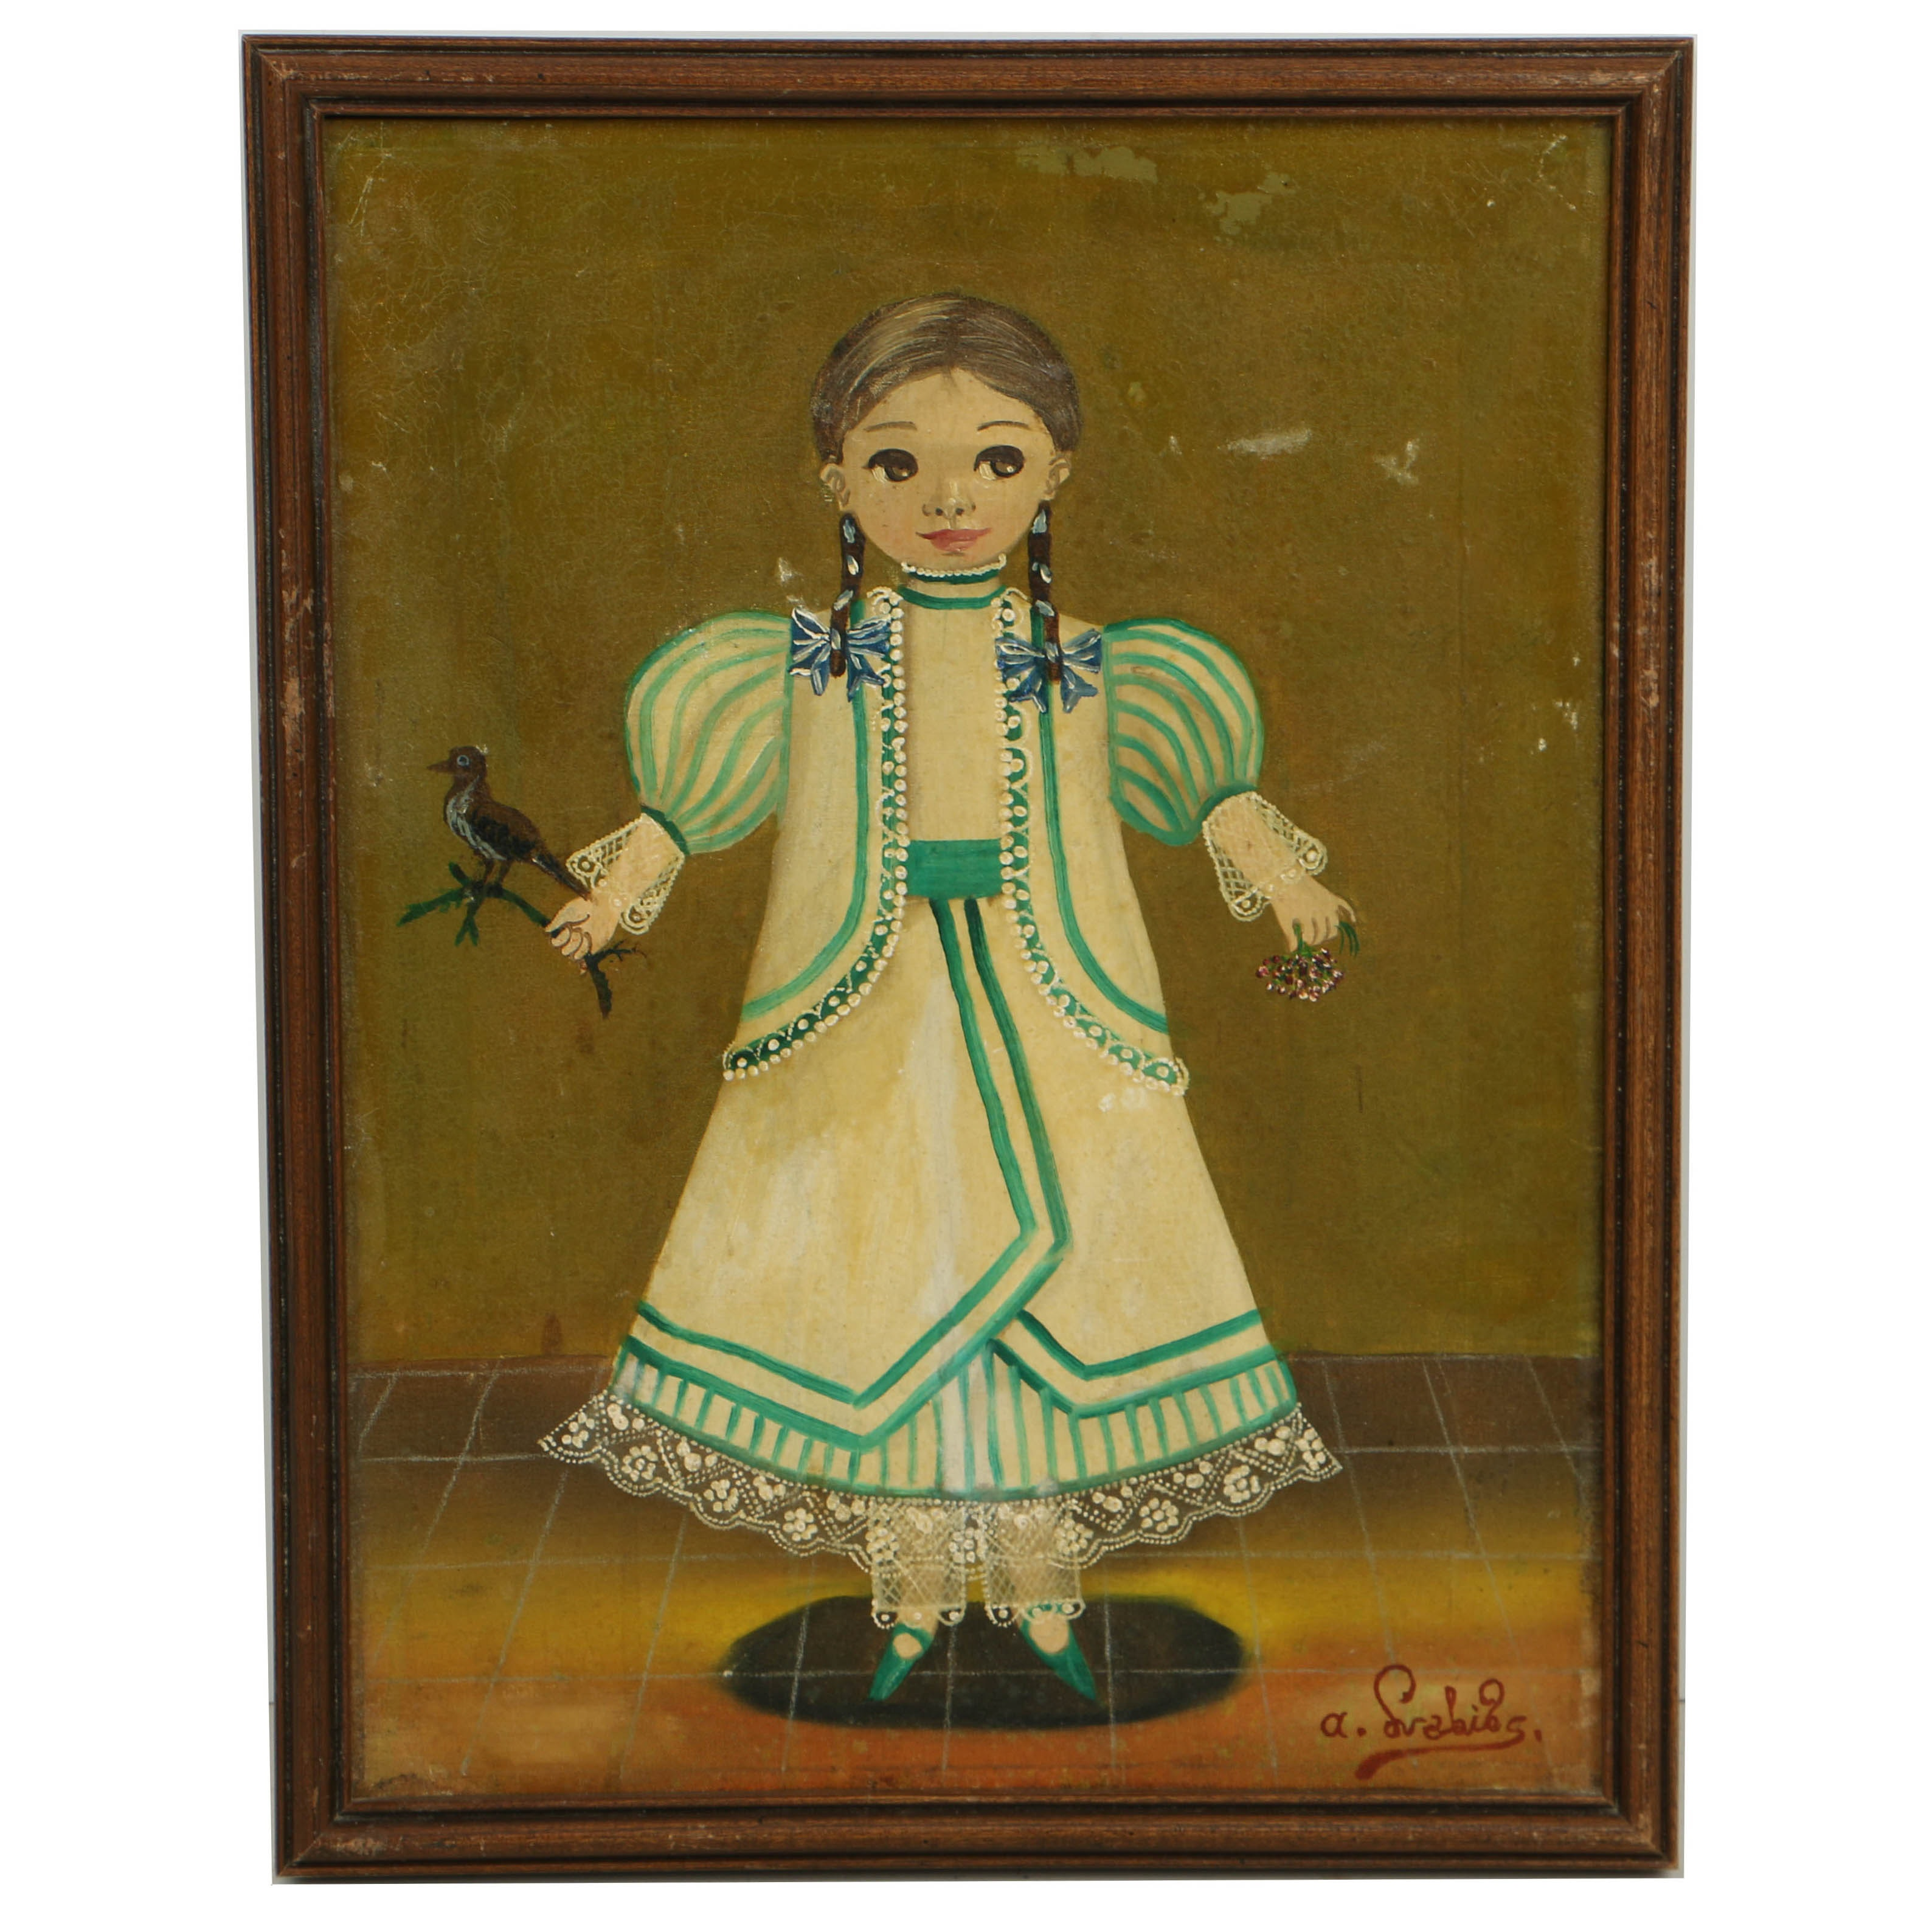 Agapito Labios Oil Painting on Canvas Girl in a Dress